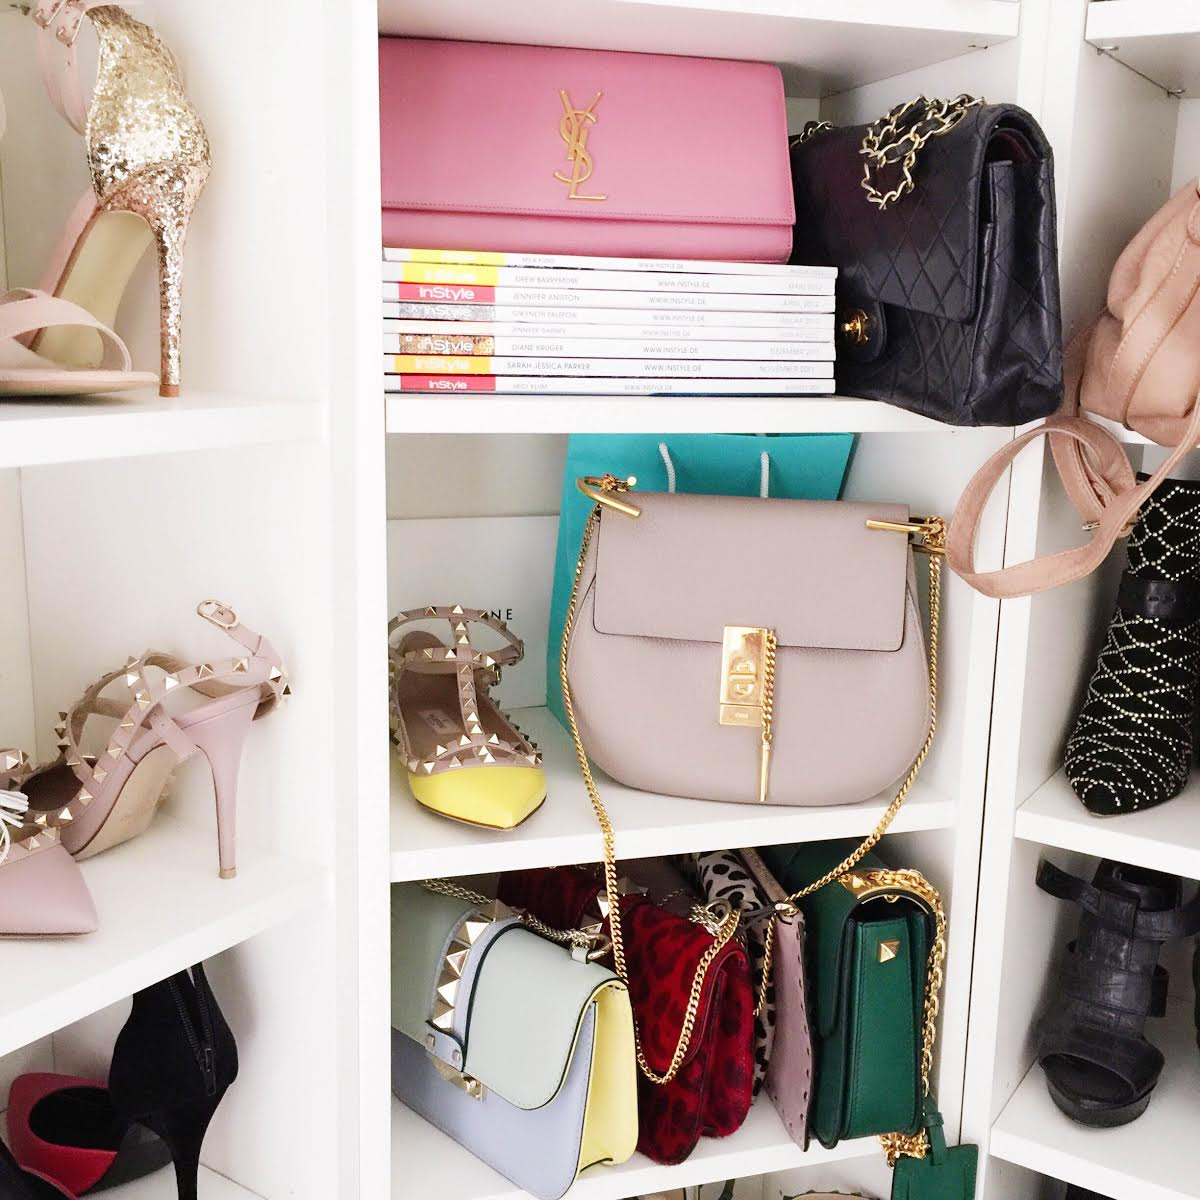 fashionhippieloves-closet-valentino-bag-rockstud-flats-chloe-drew-bag-shoe-closet-bags-walkincloset